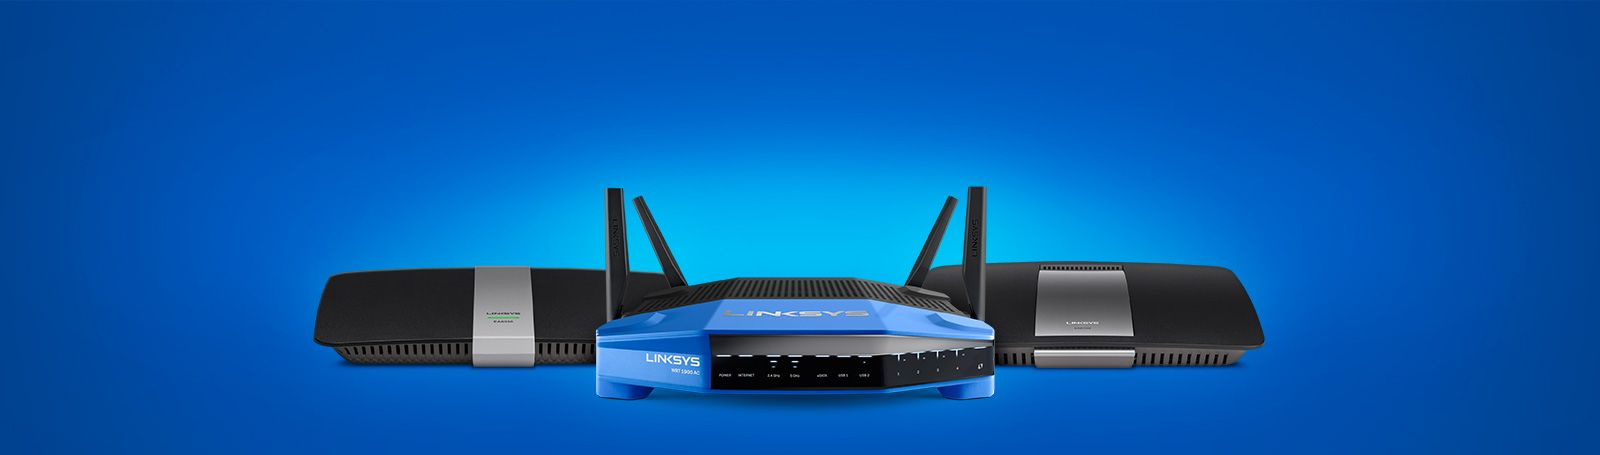 Linksyssmartwifi Com Web Address Being Used For Getting Redirected To The Firmware Page Of The Linksys Smart Wireless Router All In 2020 Linksys Smart Wifi Wifi Router